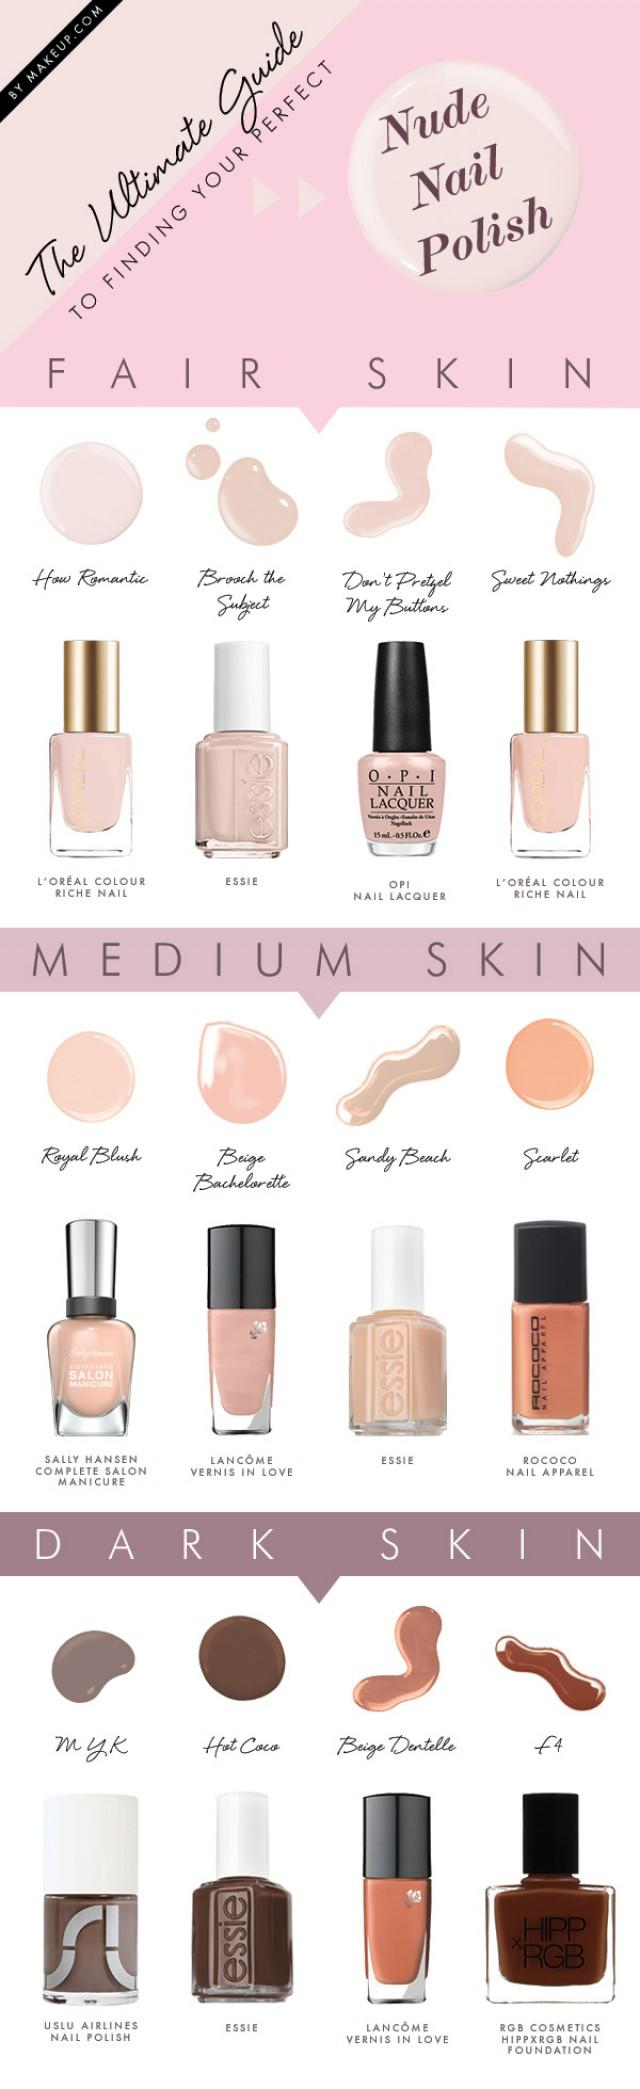 Manicure Monday The Best Nude Nail Polishes For Your Skin Tone Weddbook